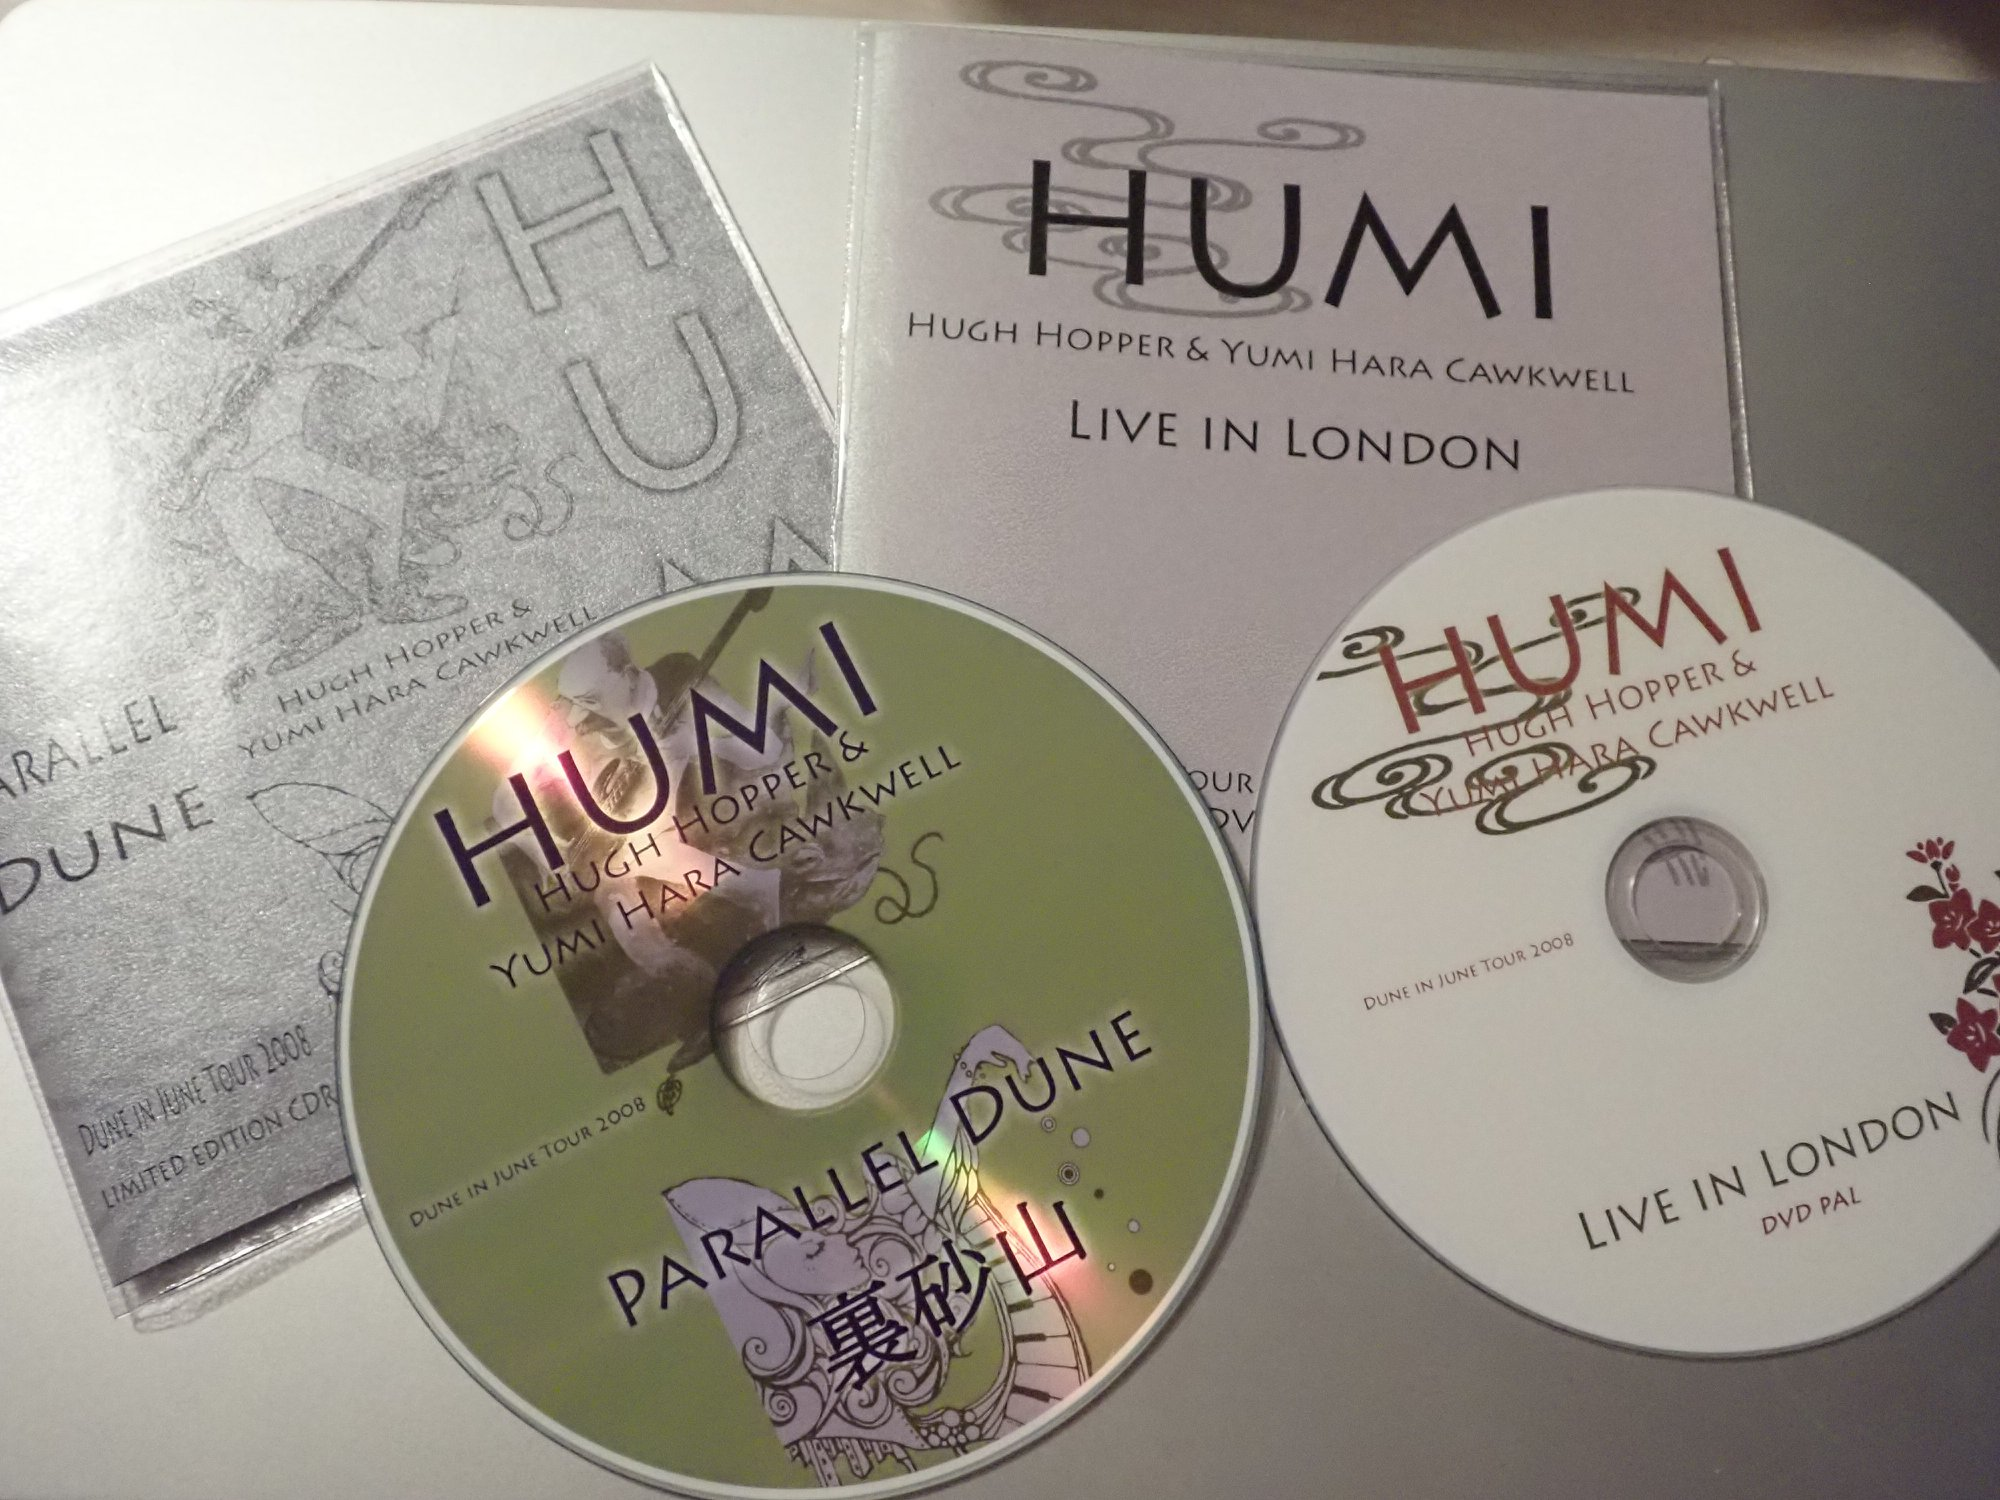 HUMI CDR & DVDR picture